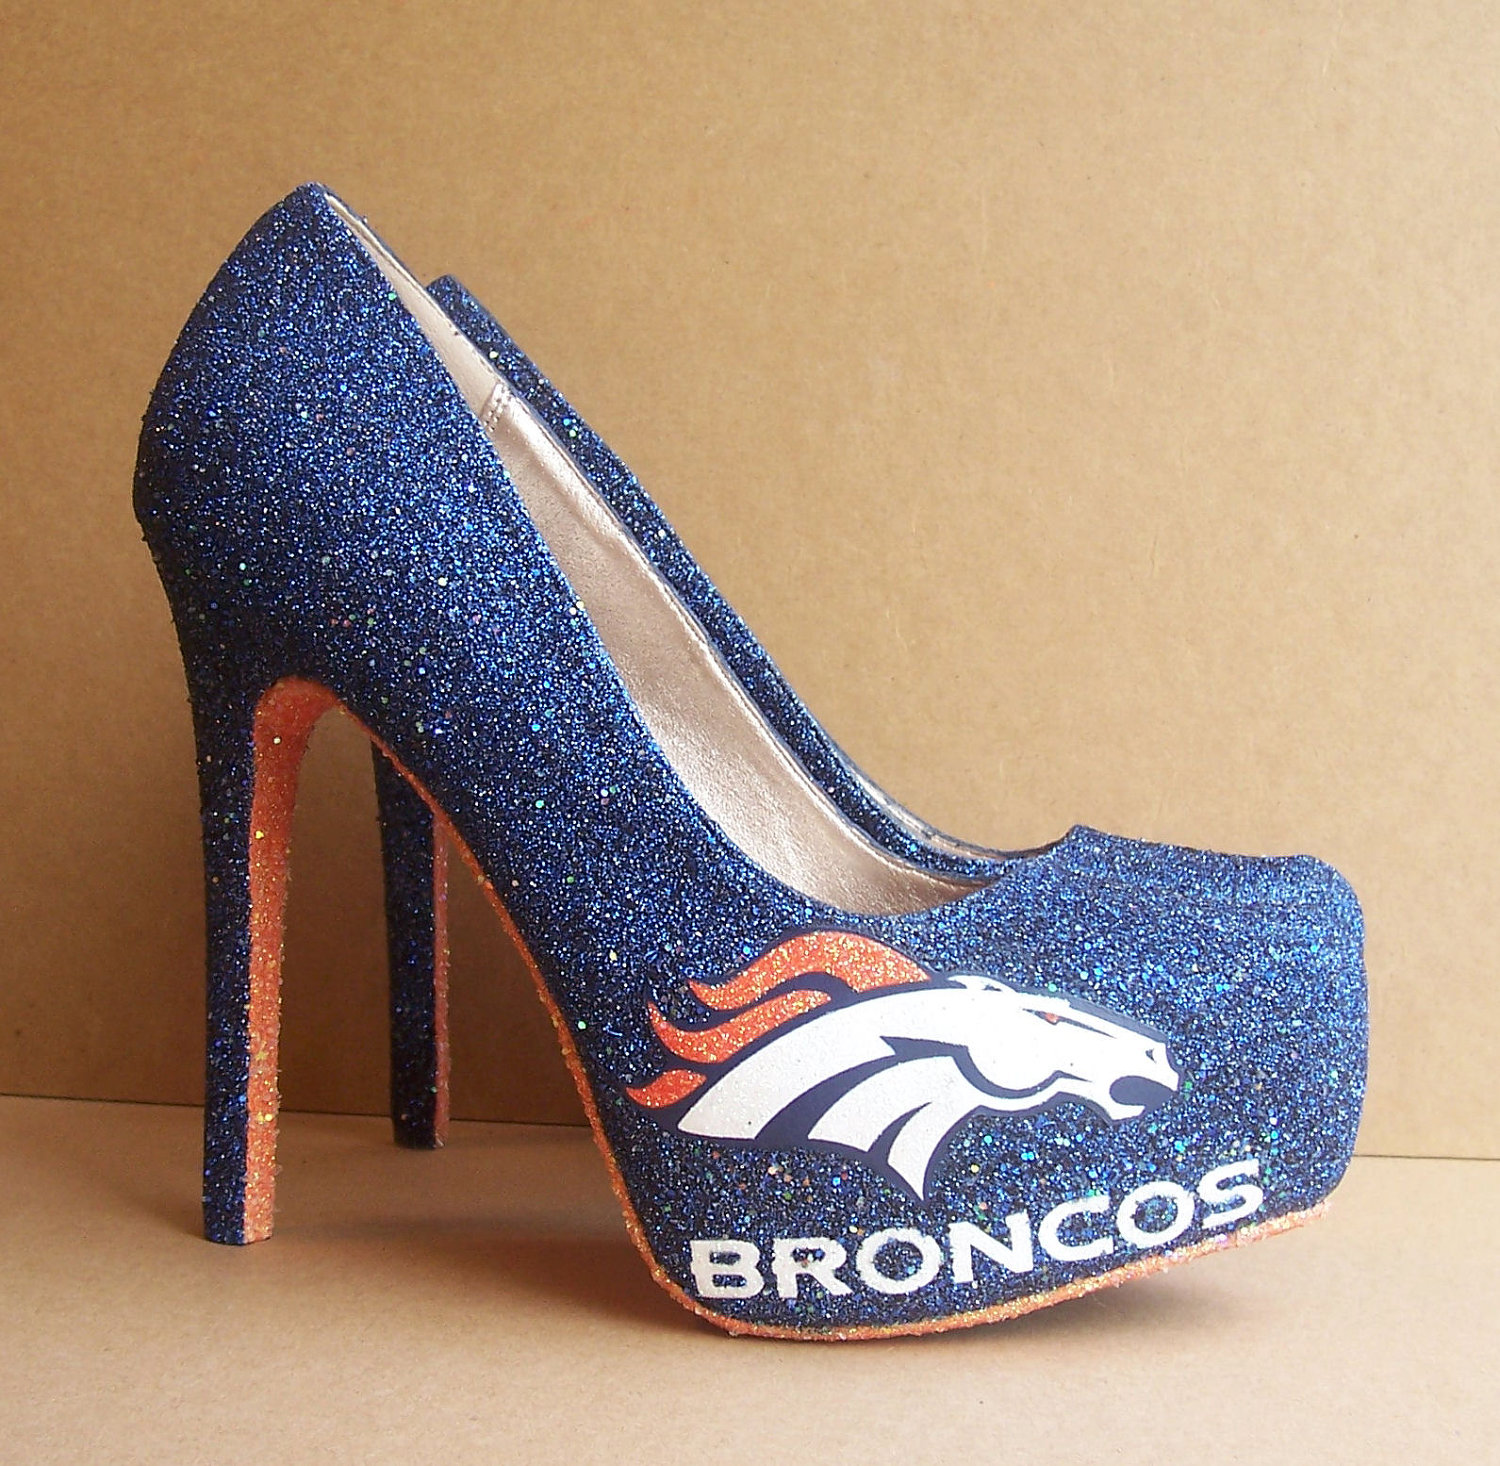 Funky-wedding-shoes-for-sports-loving-brides-broncos.original